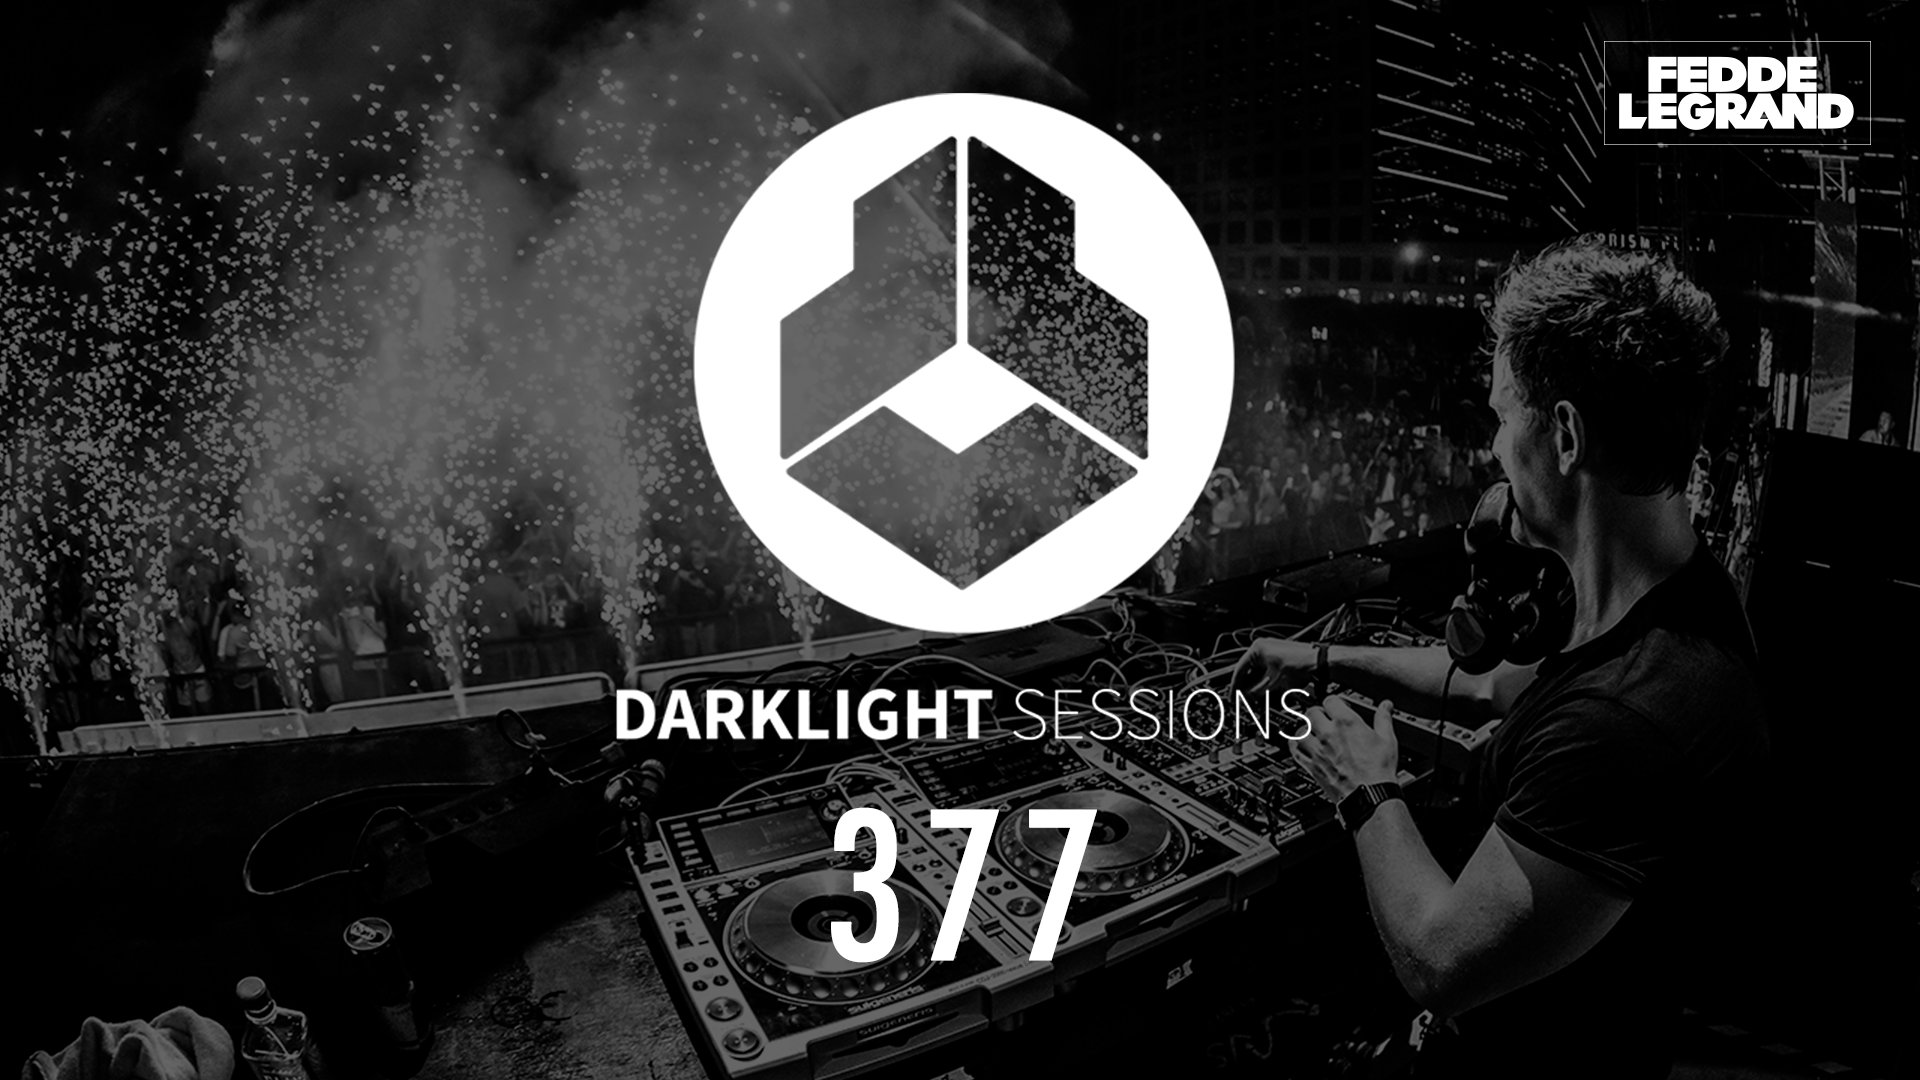 Darklight Sessions 377